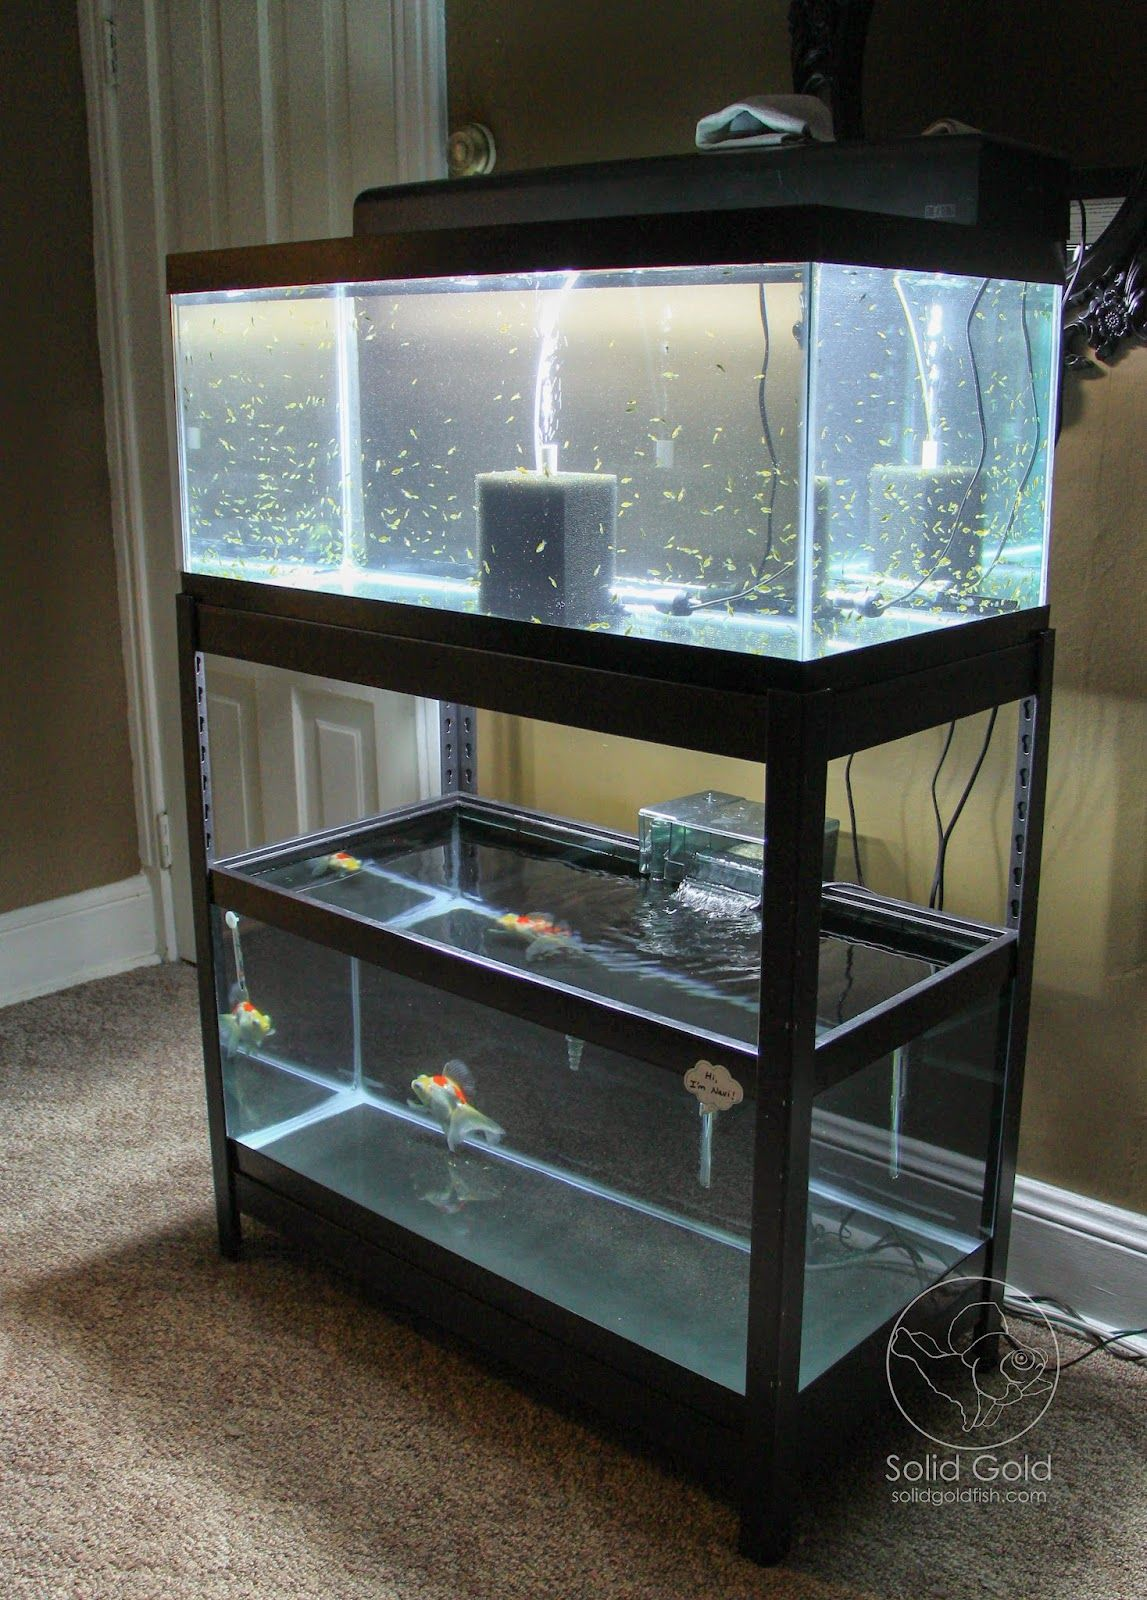 Fish tank in the floor - I Found This Shelving Unit From Lowe S That Fits Two 40 Gallon Breeder Tanks Perfectly This Means No More Tanks On The Floor Of My D